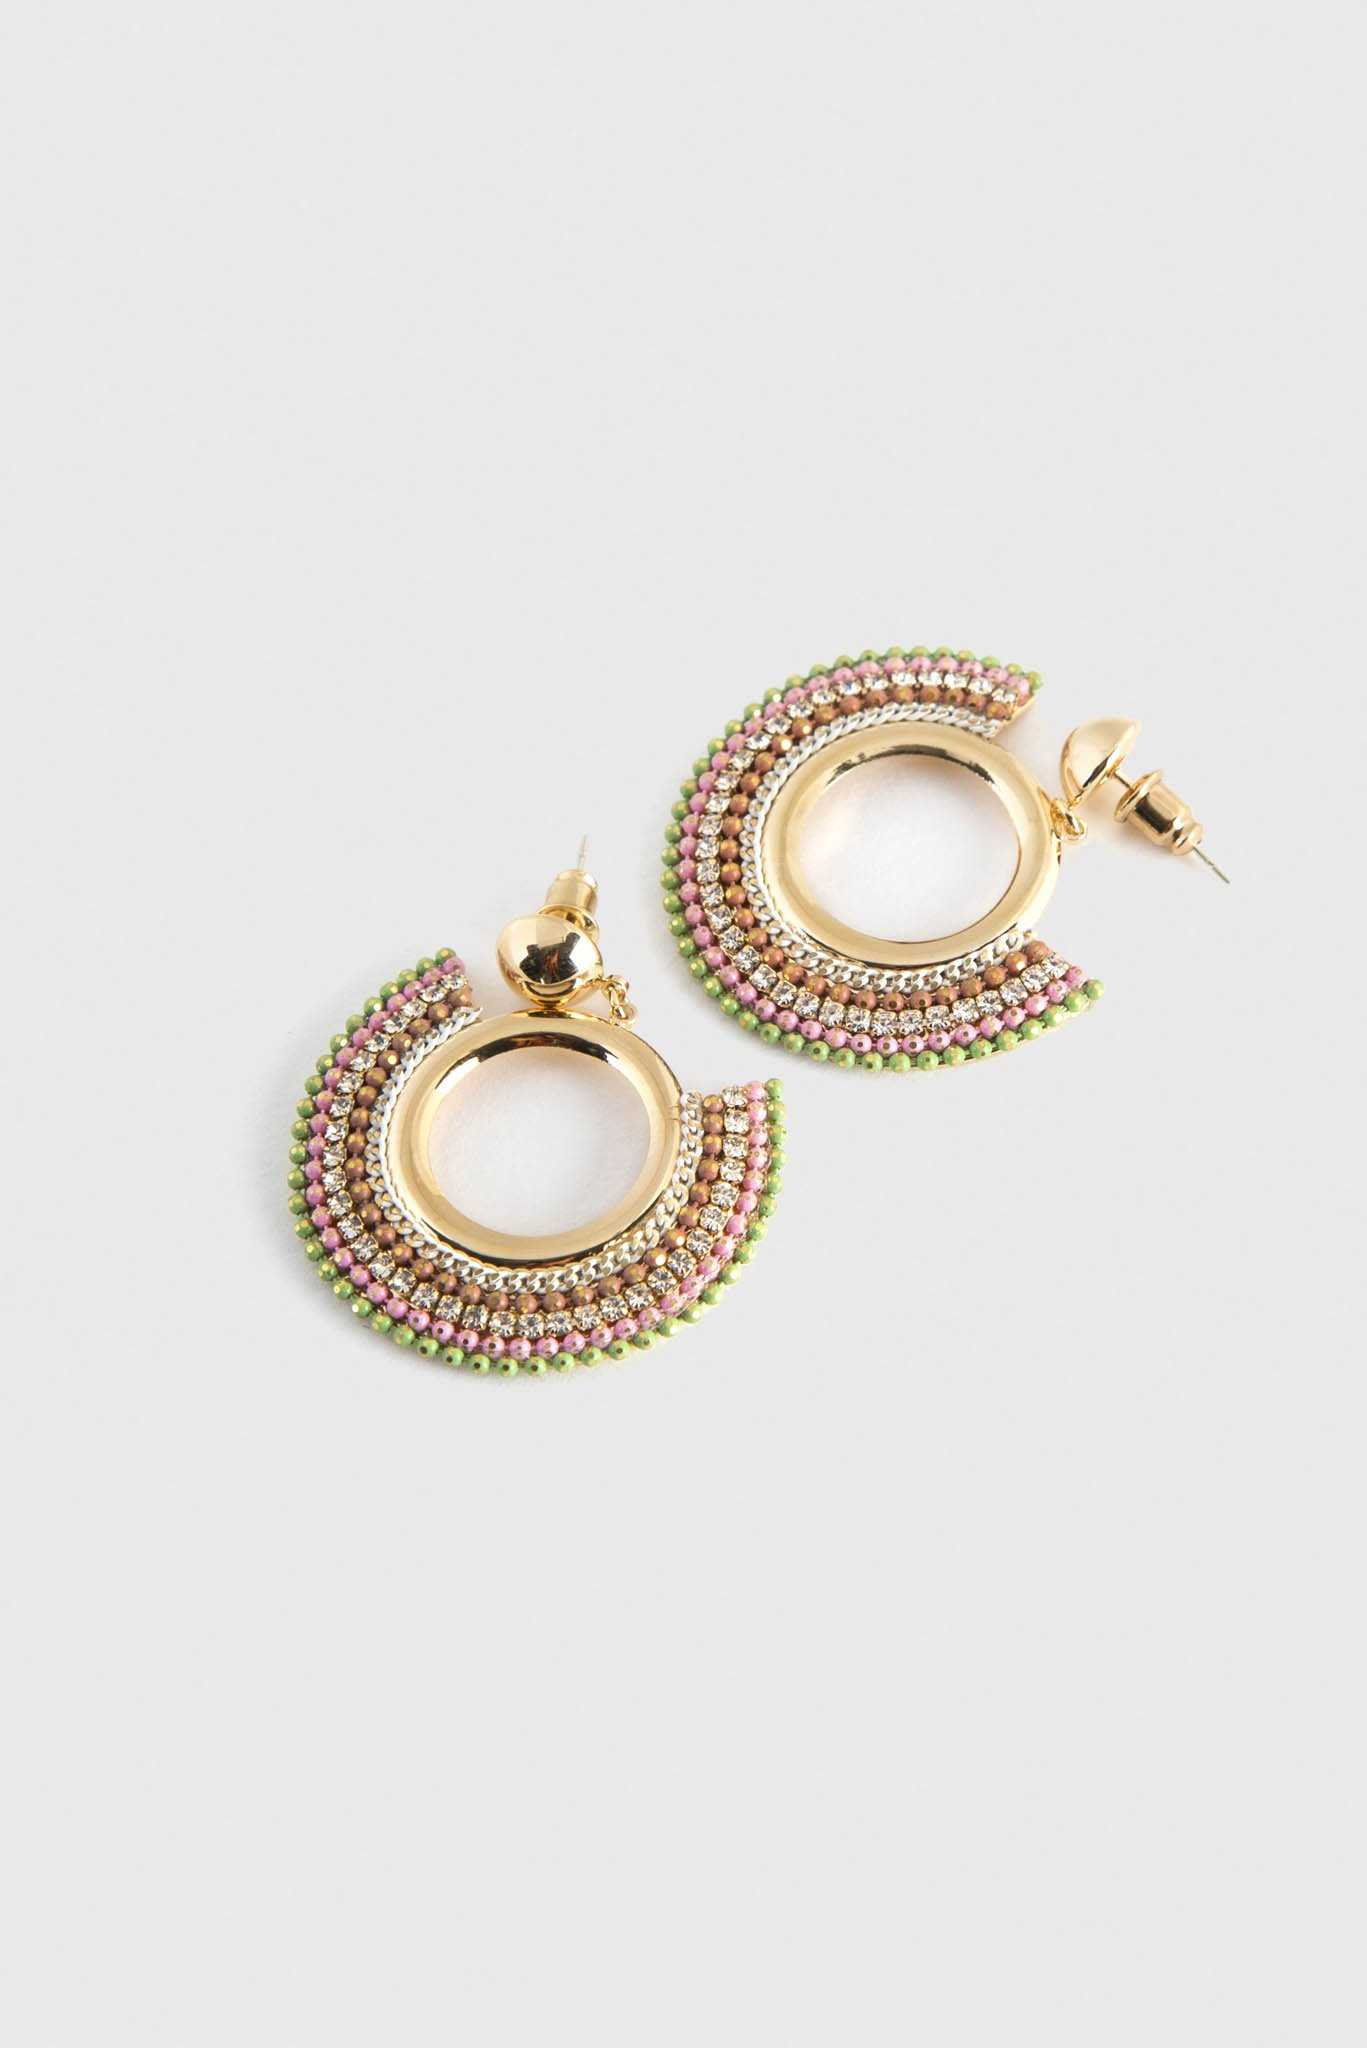 Embellished Hoop Earrings | Raw Orange